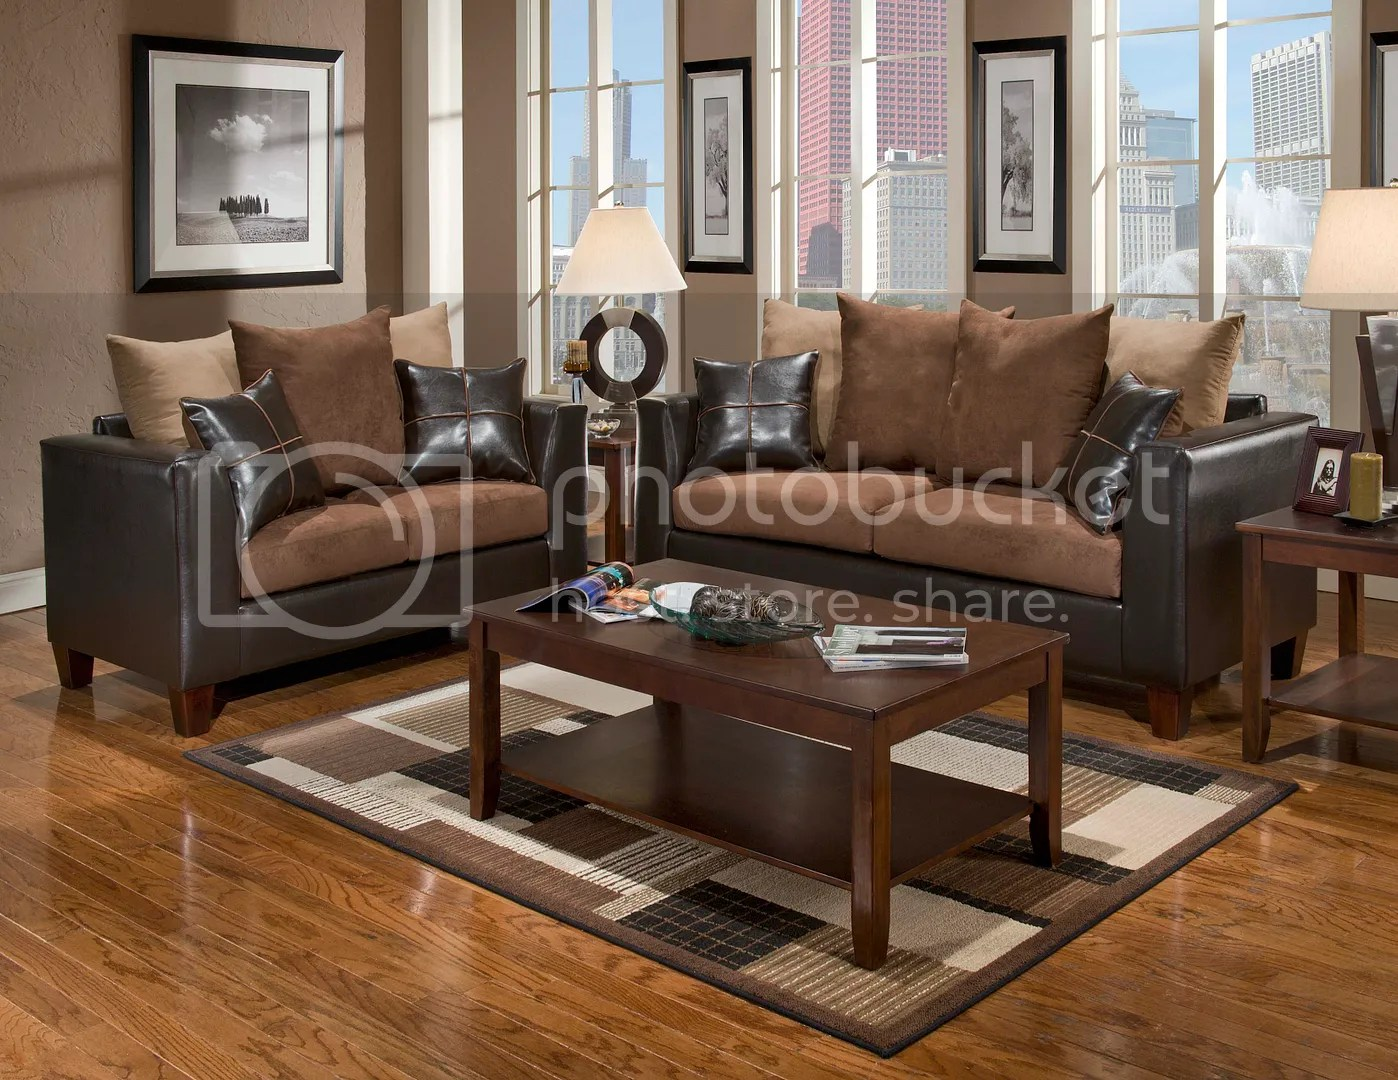 Living Room Sofas Sets Details About Casual Contemporary Chocolate Brown Sofa Love Seat Living Room Furniture Set